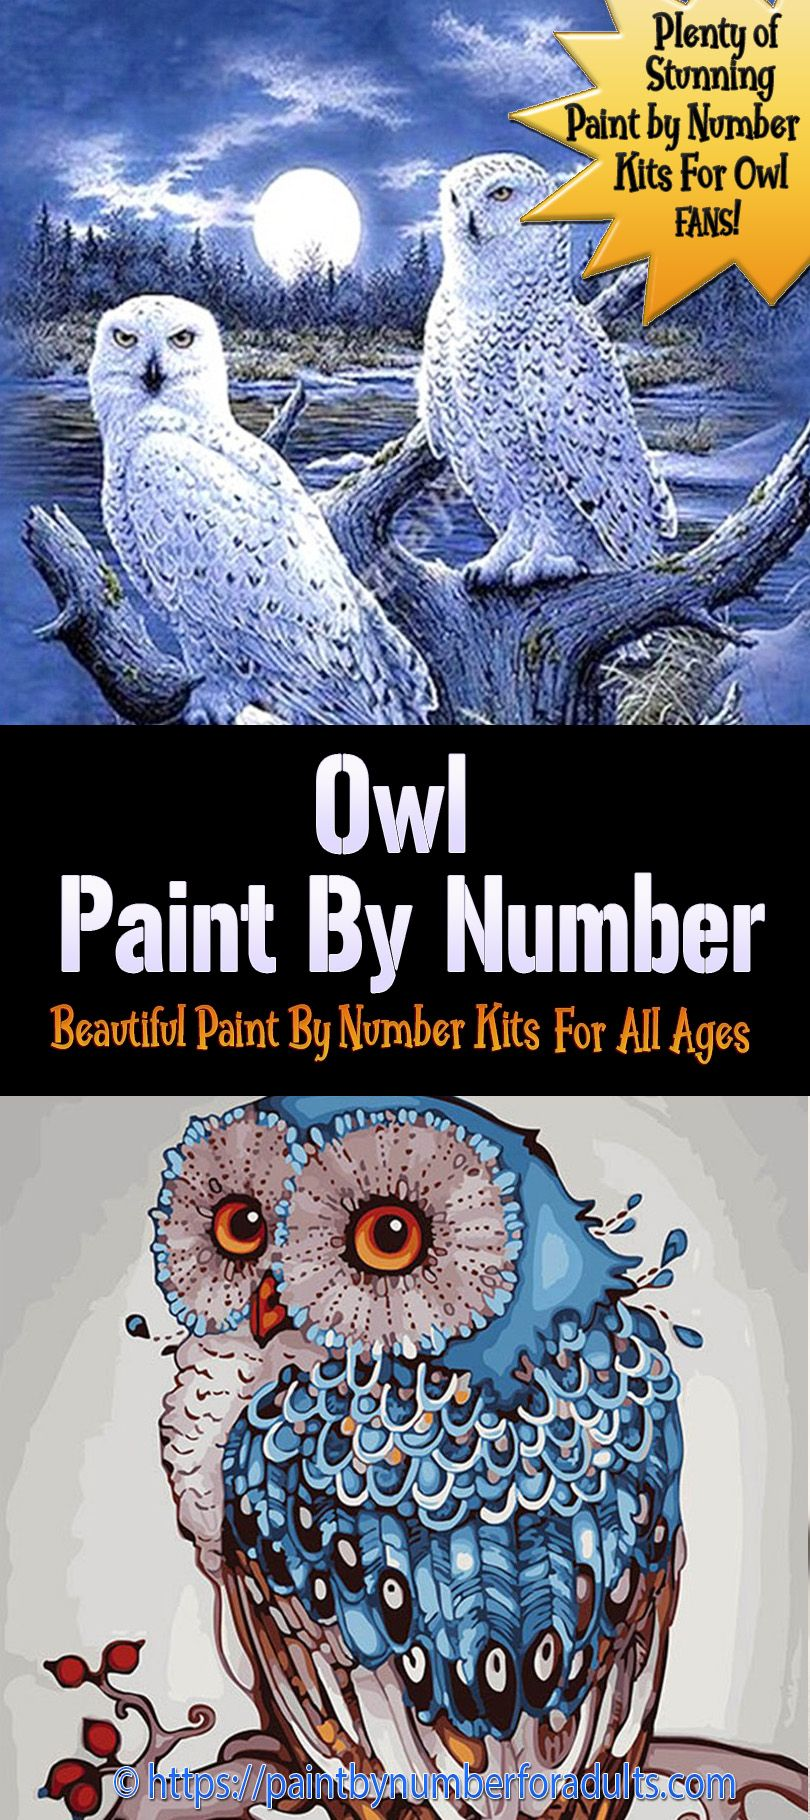 Paint By Number Kits of Owls Paint by number kits, Paint